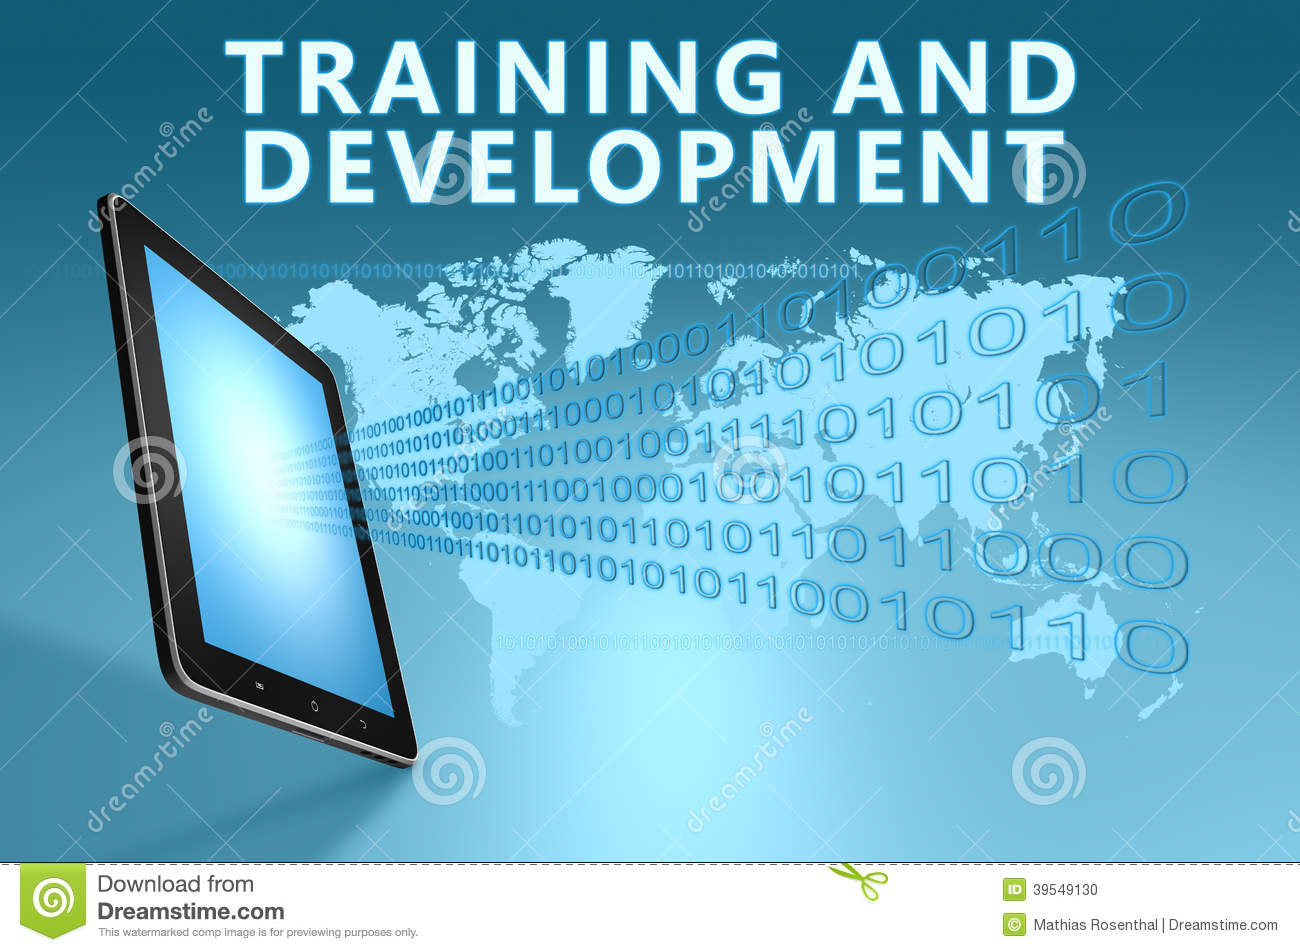 training and development The association for talent development's job bank offers job openings in instructional design, training and development and the learning management fields find your next position on the atd.